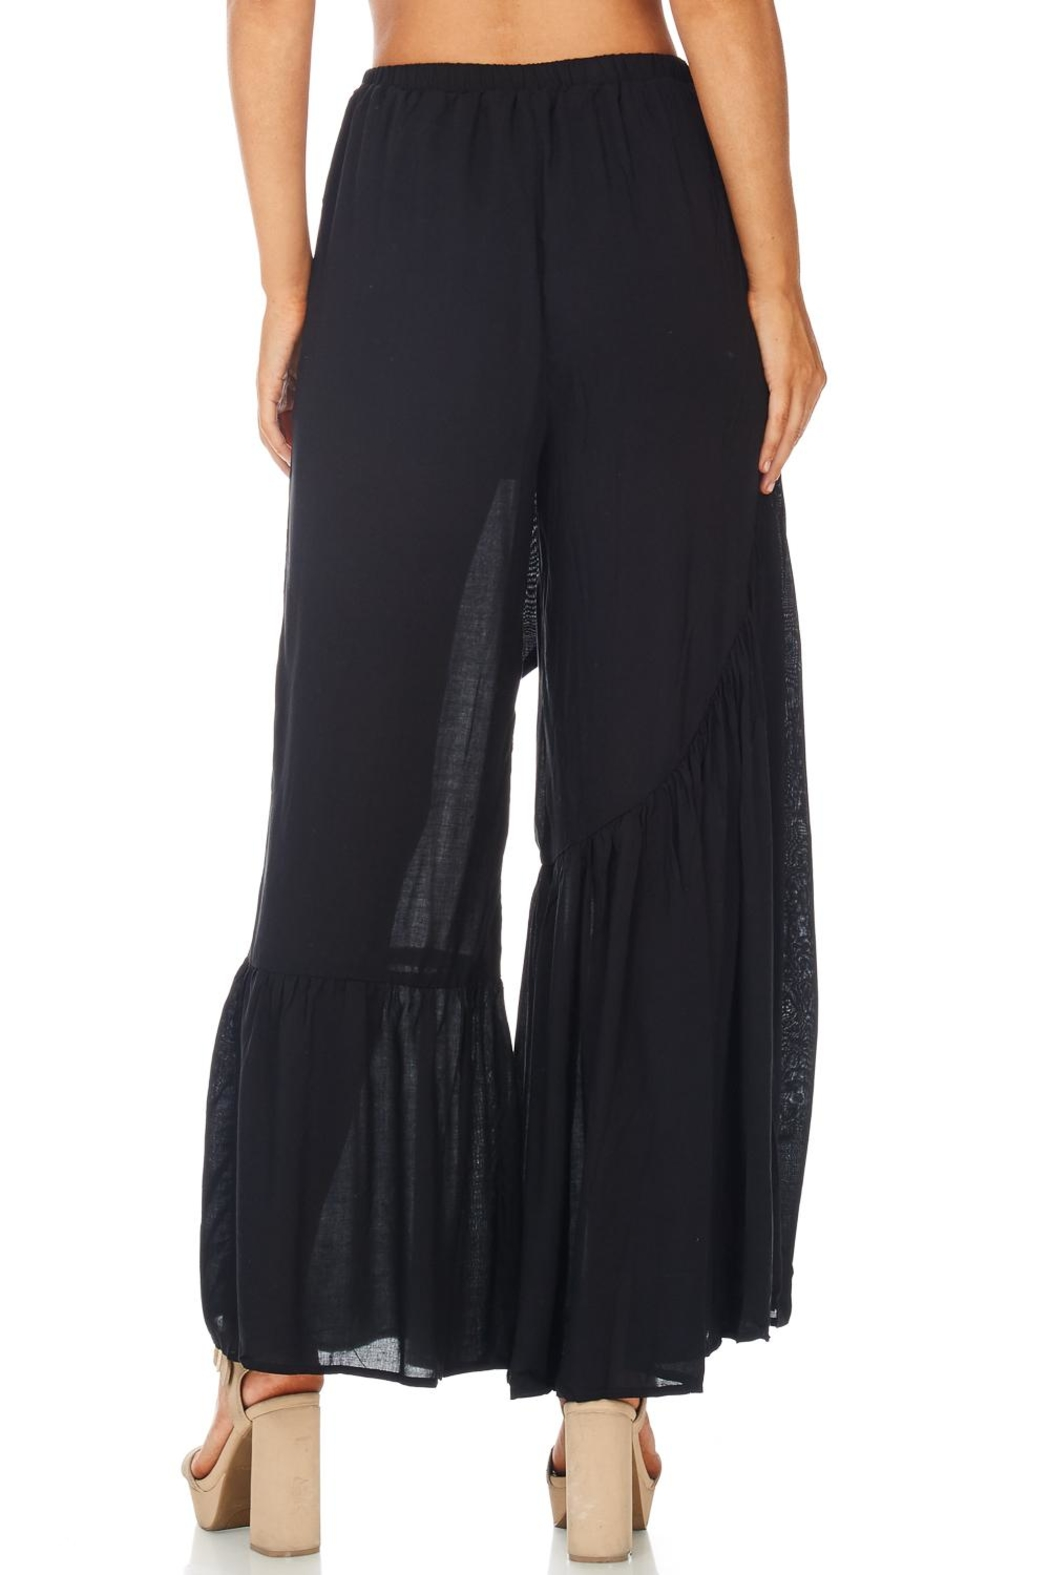 Favlux Bell Bottom Pants - Side Cropped Image